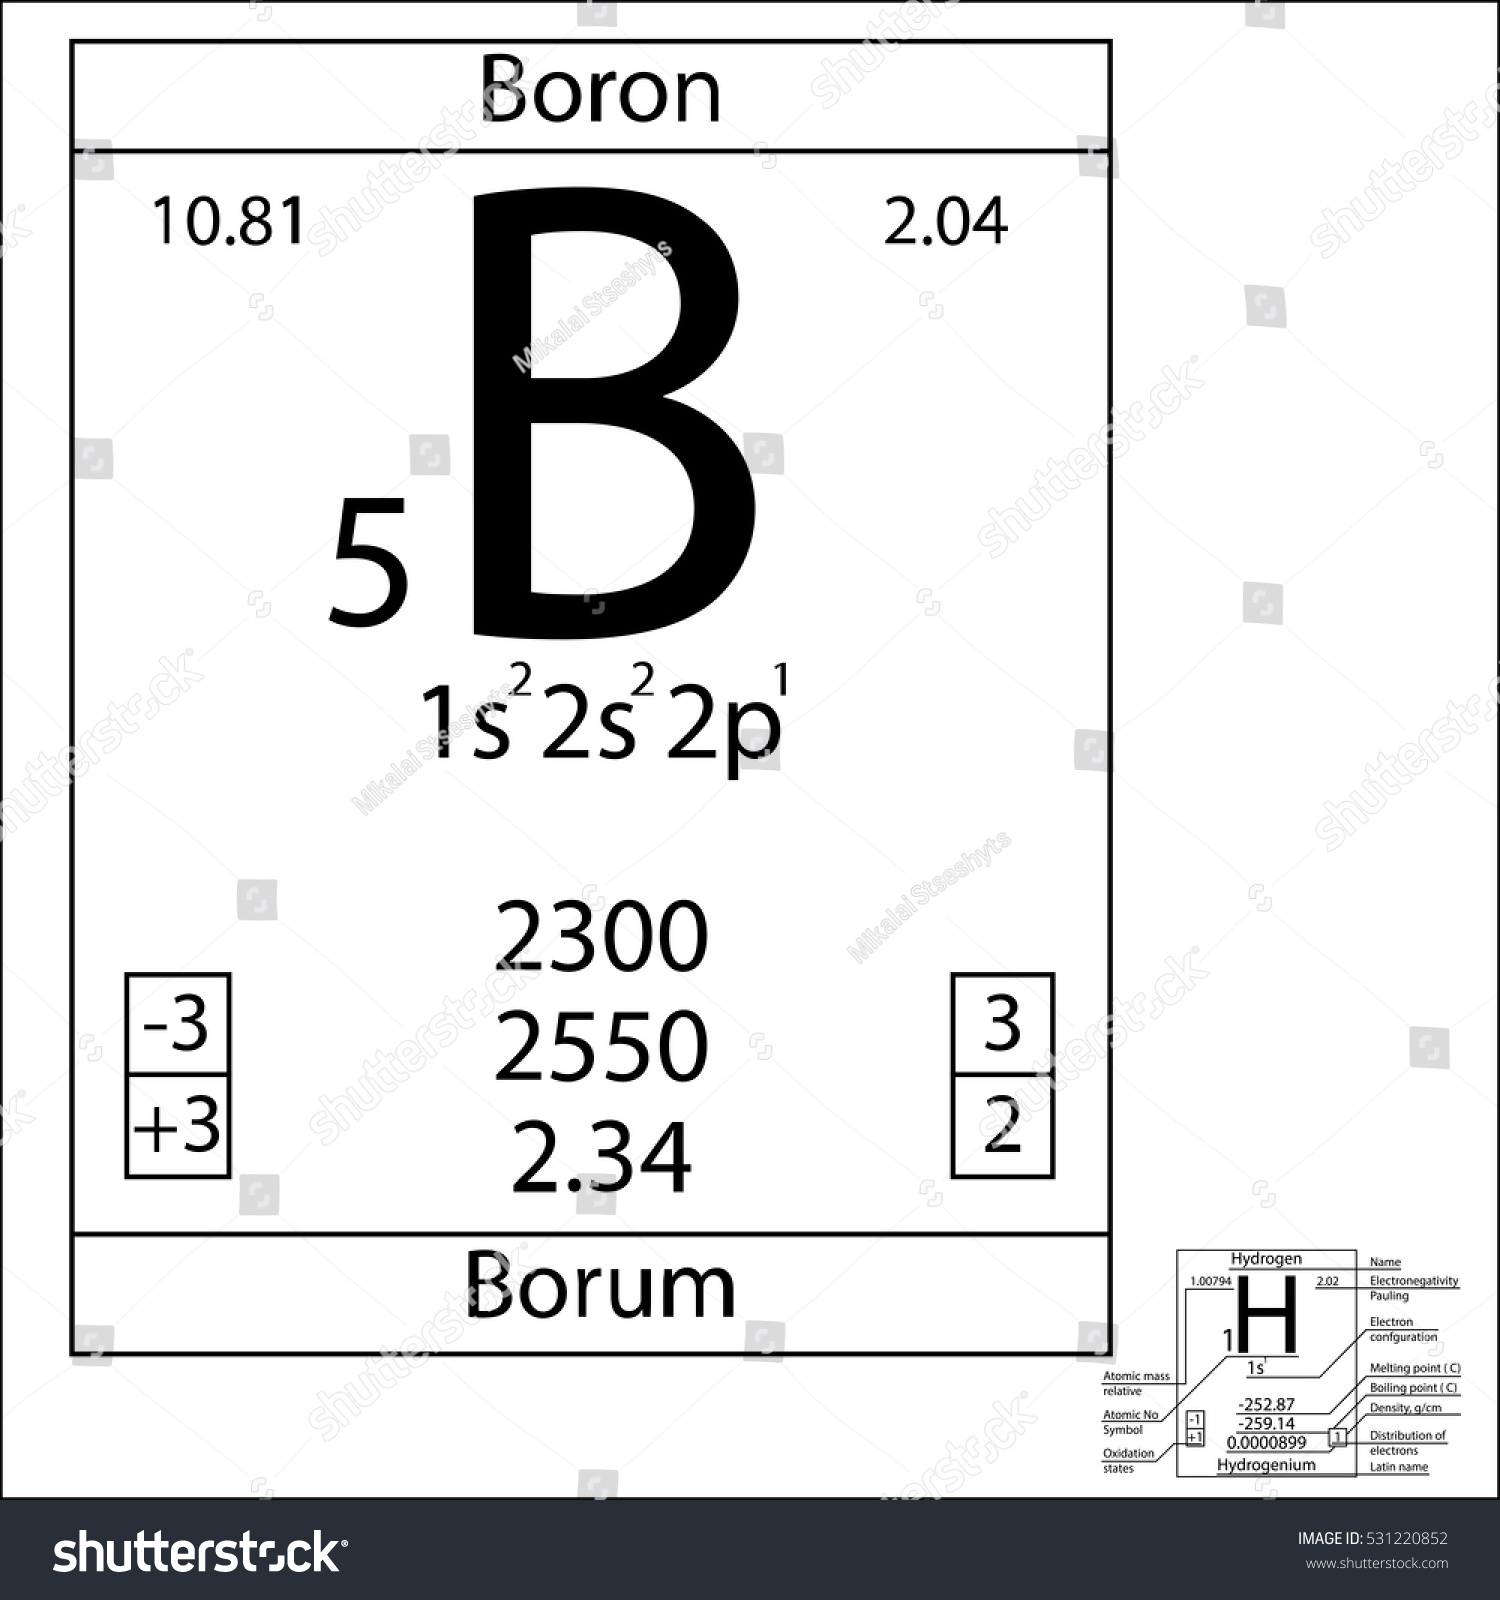 Boron in periodic table gallery periodic table images periodic table element boron basic properties stock vector the periodic table element boron with the basic gamestrikefo Image collections